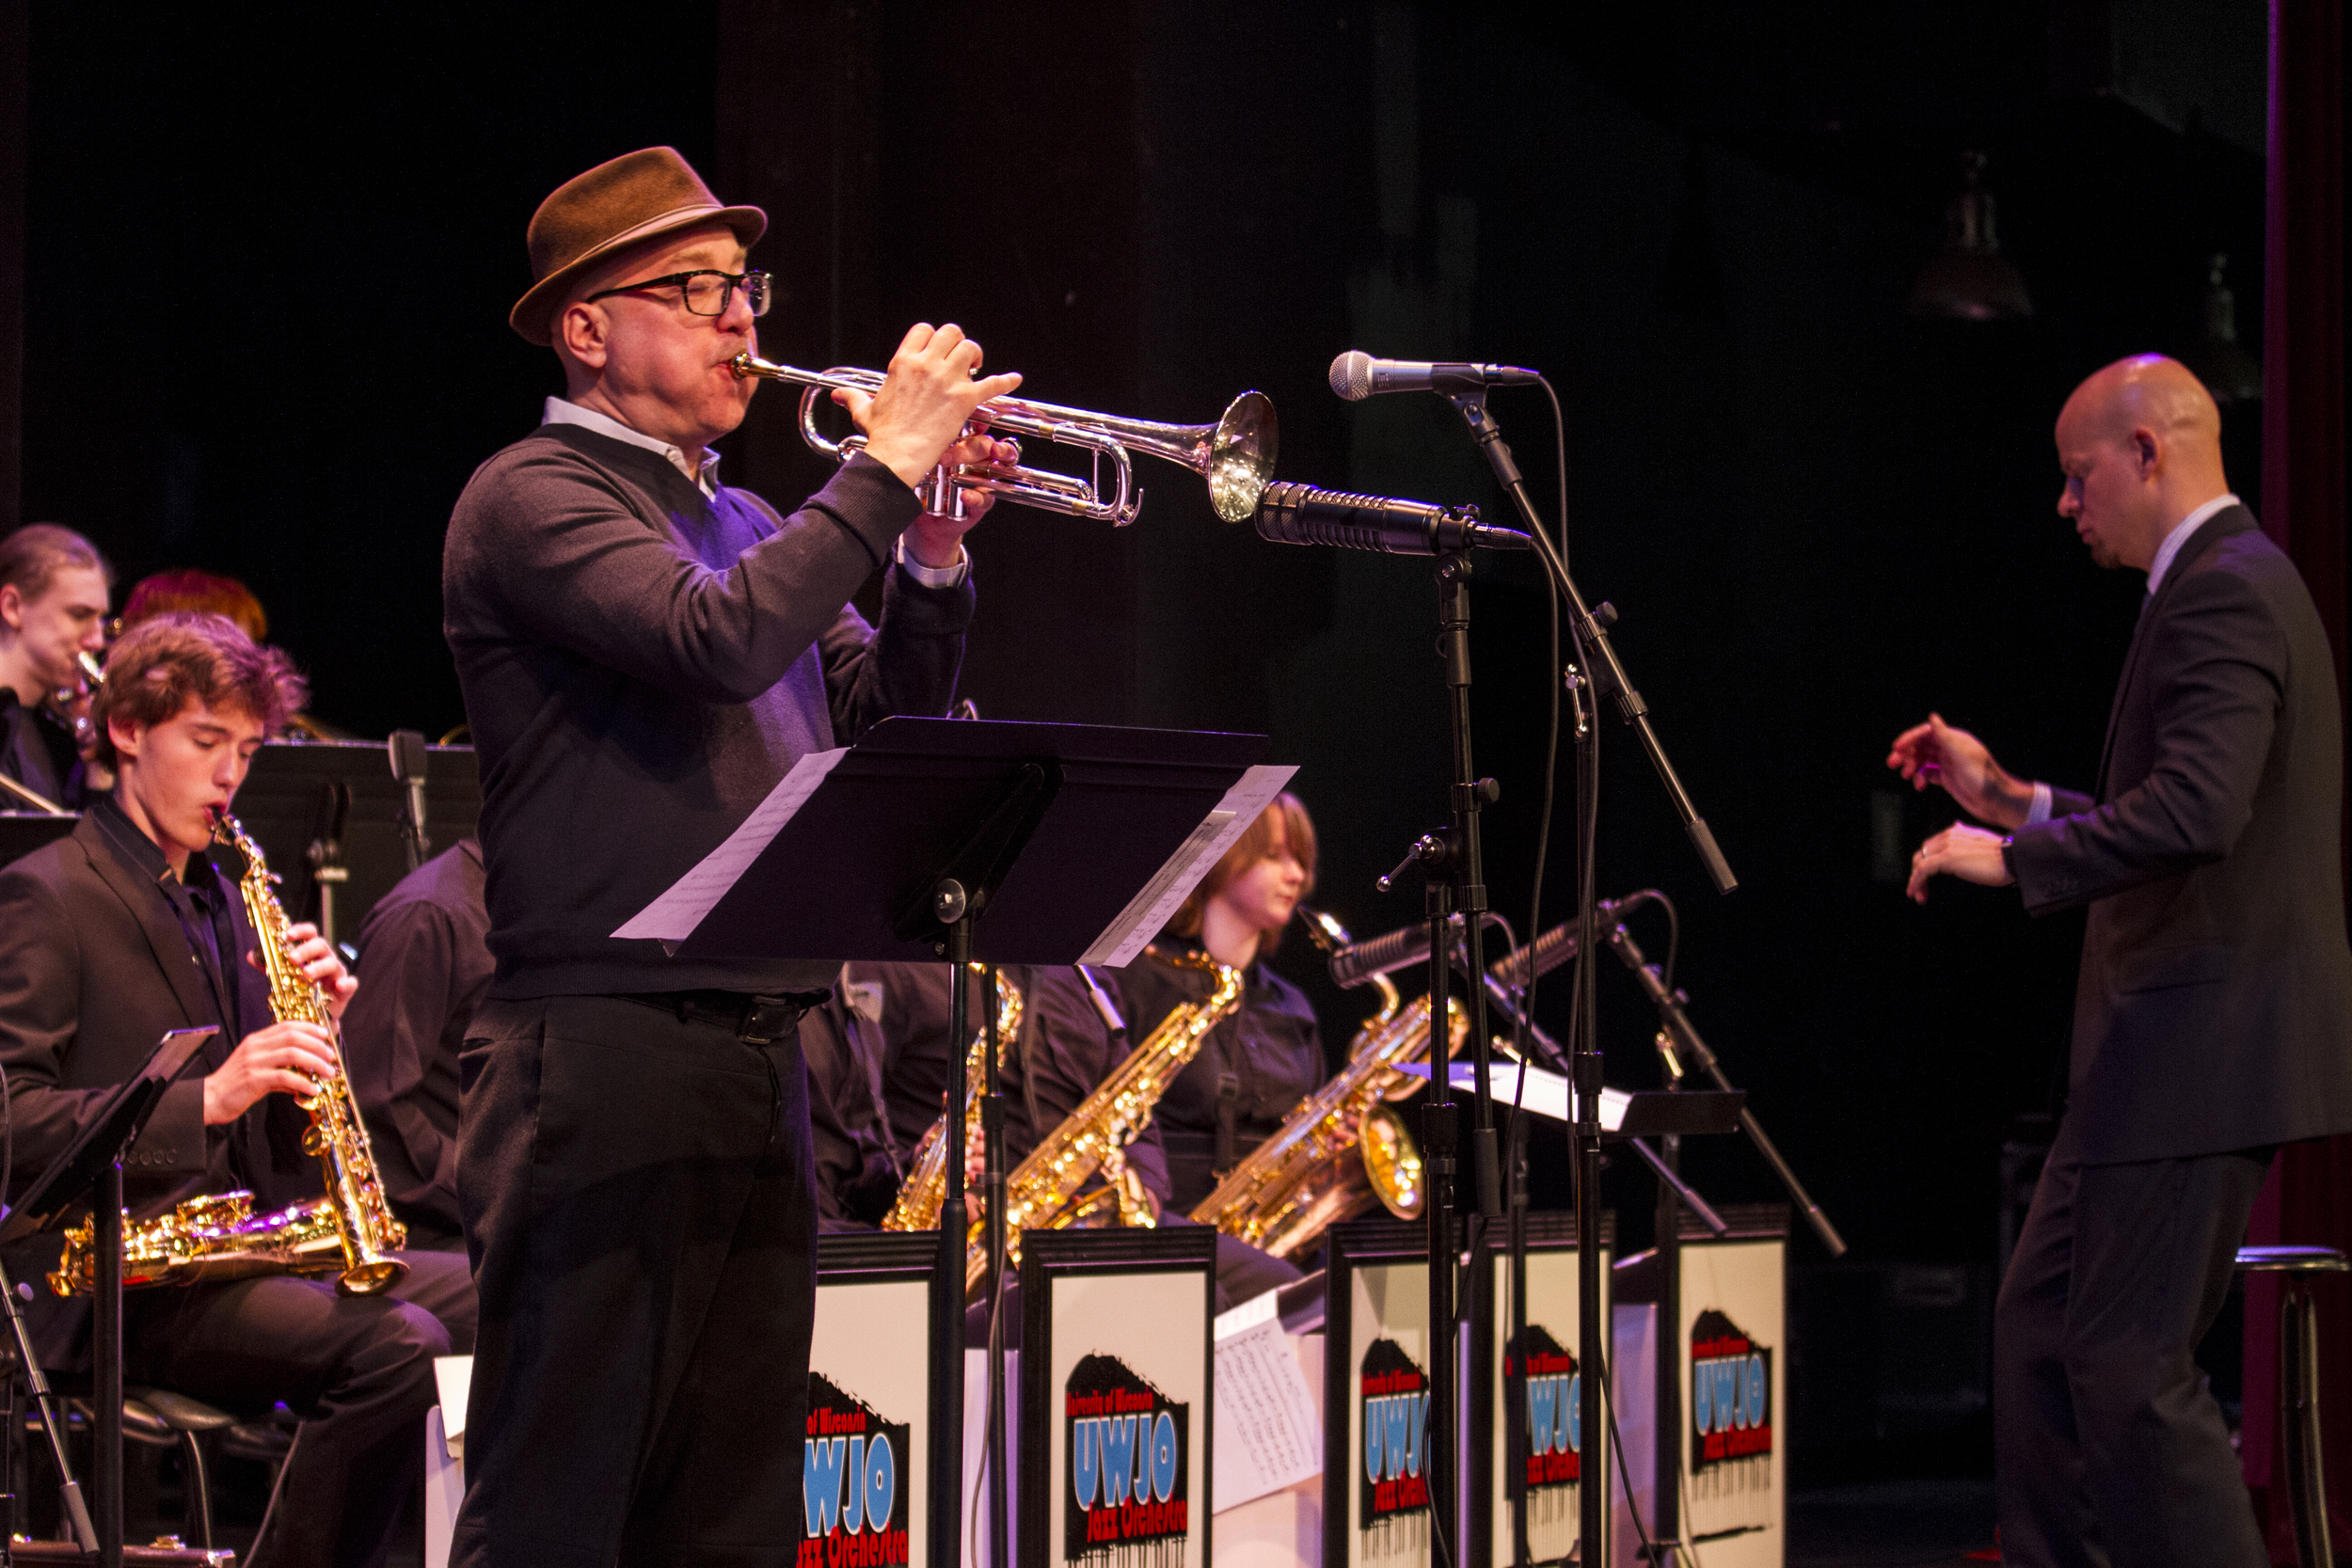 2014 UW Honors Jazz Band performance with guest trumpeter Brian Lynch (Miami, NYC)